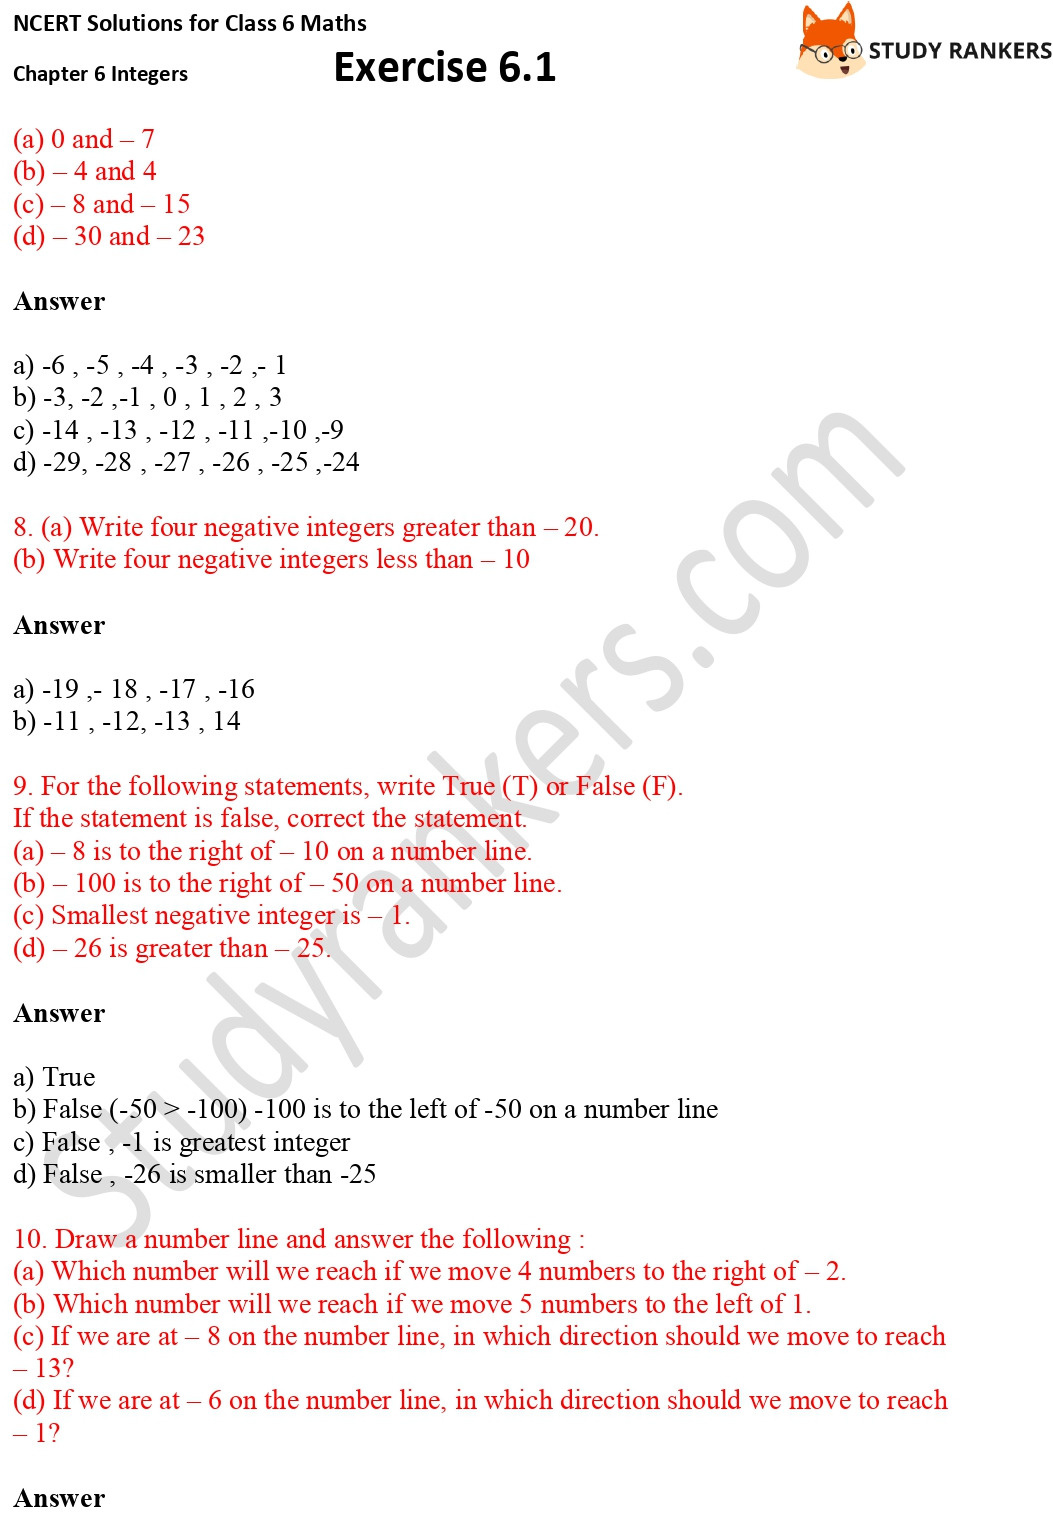 NCERT Solutions for Class 6 Maths Chapter 6 Integers Exercise 6.1 Part 5